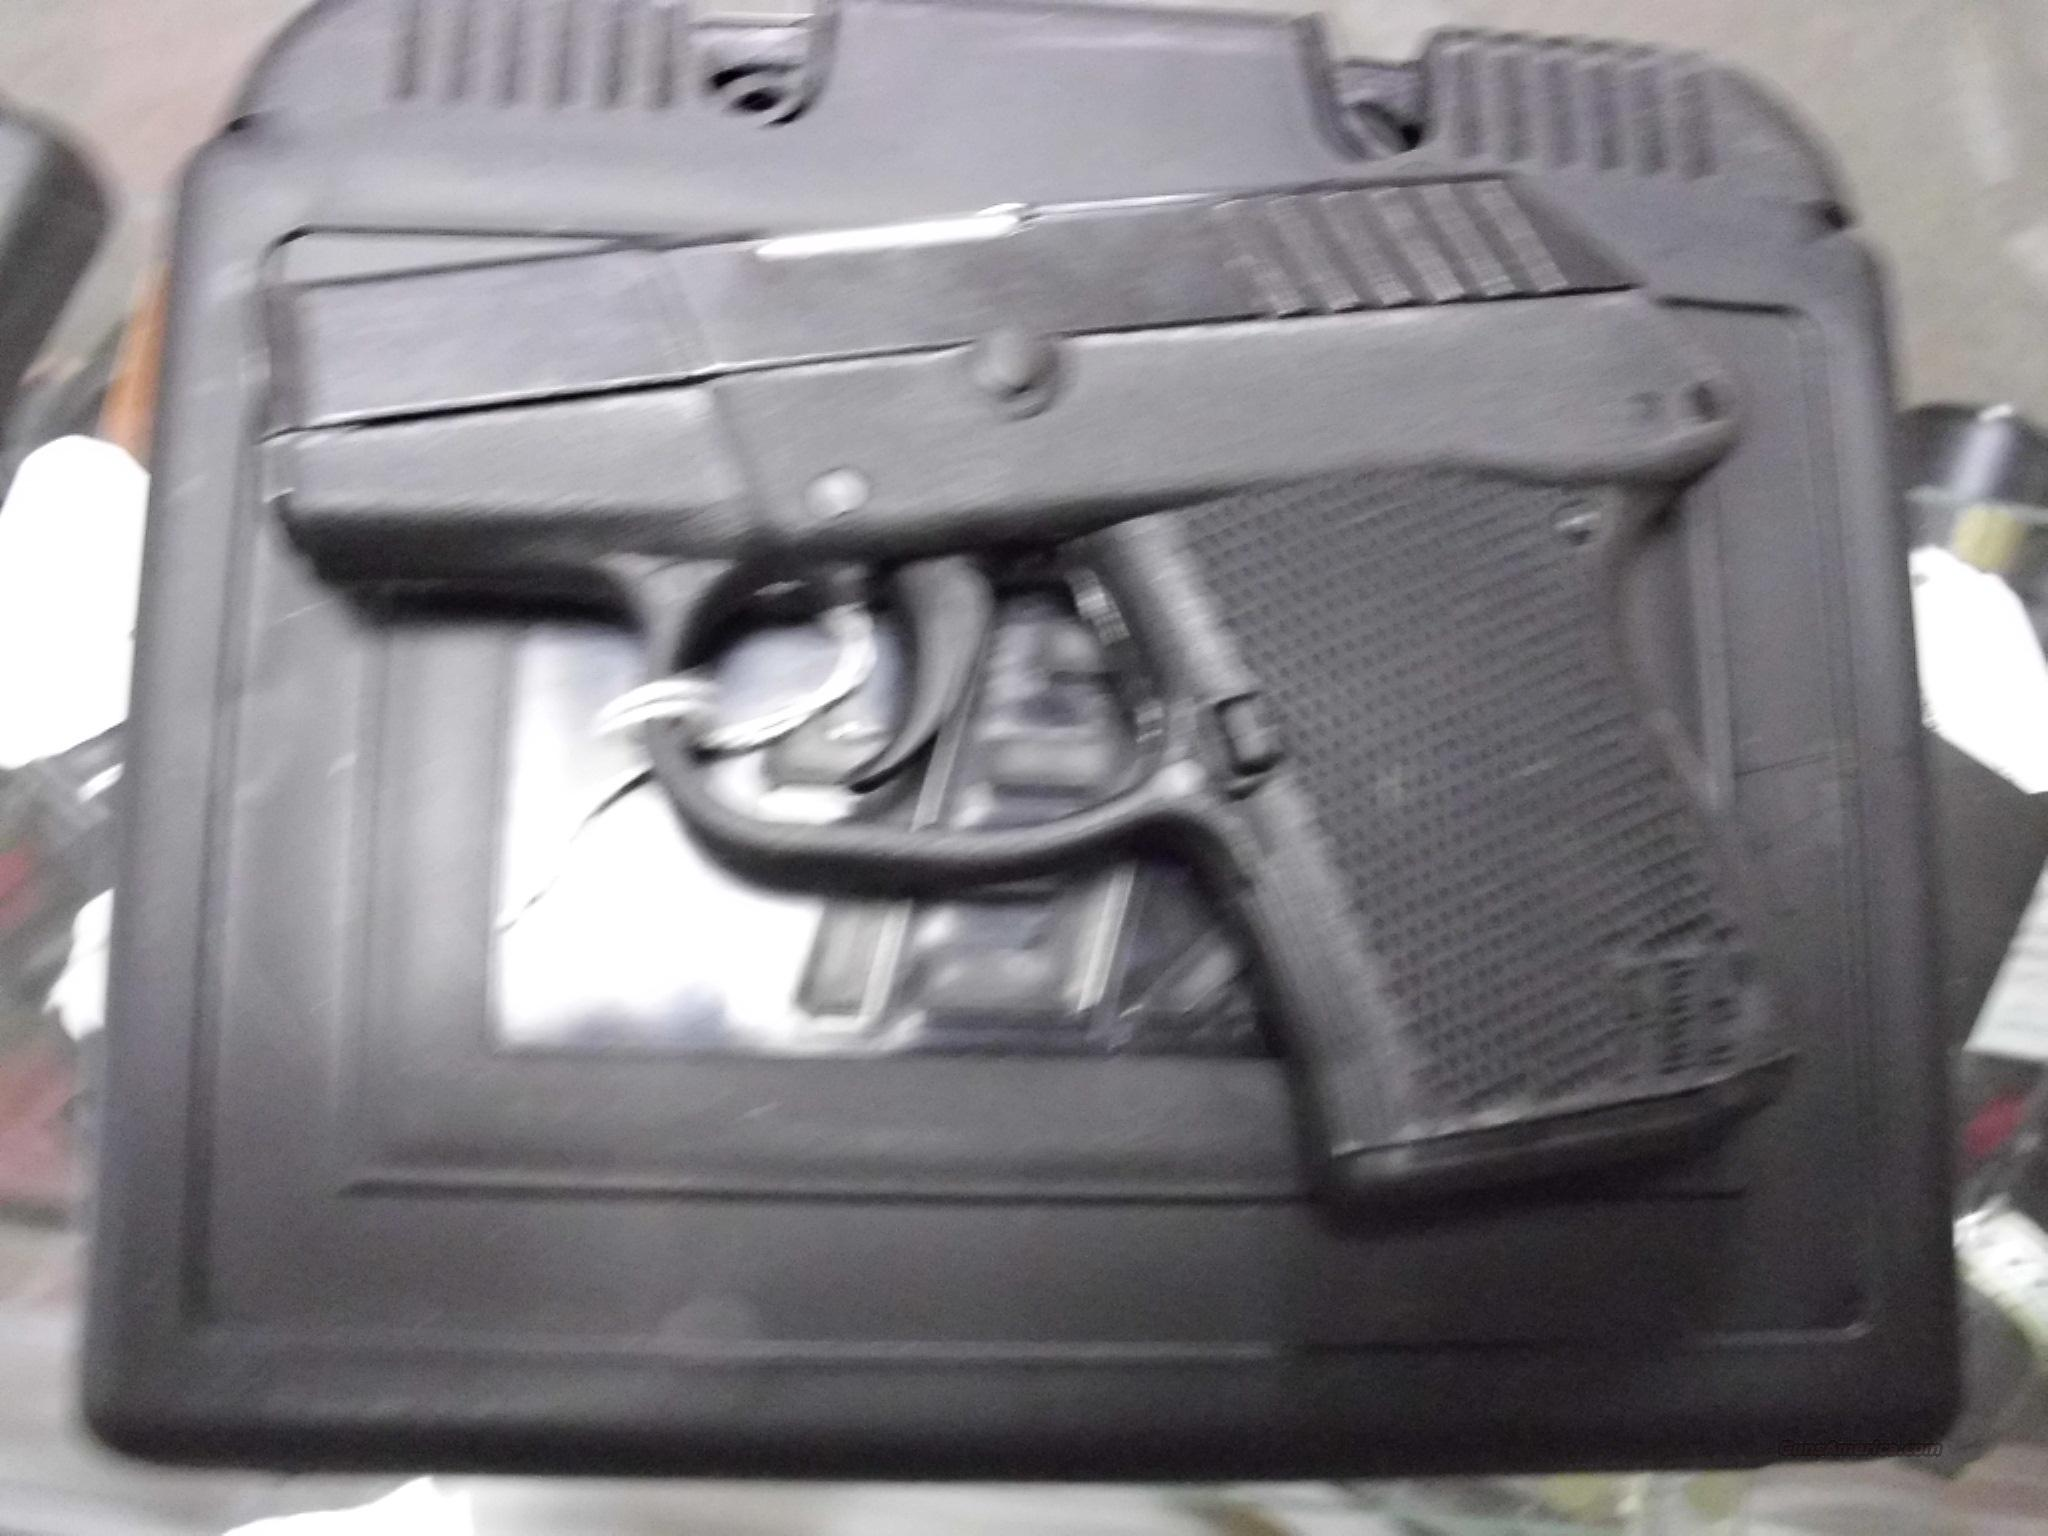 Kel Tec P-3AT.380Acp NEW   Guns > Pistols > Kel-Tec Pistols > Pocket Pistol Type